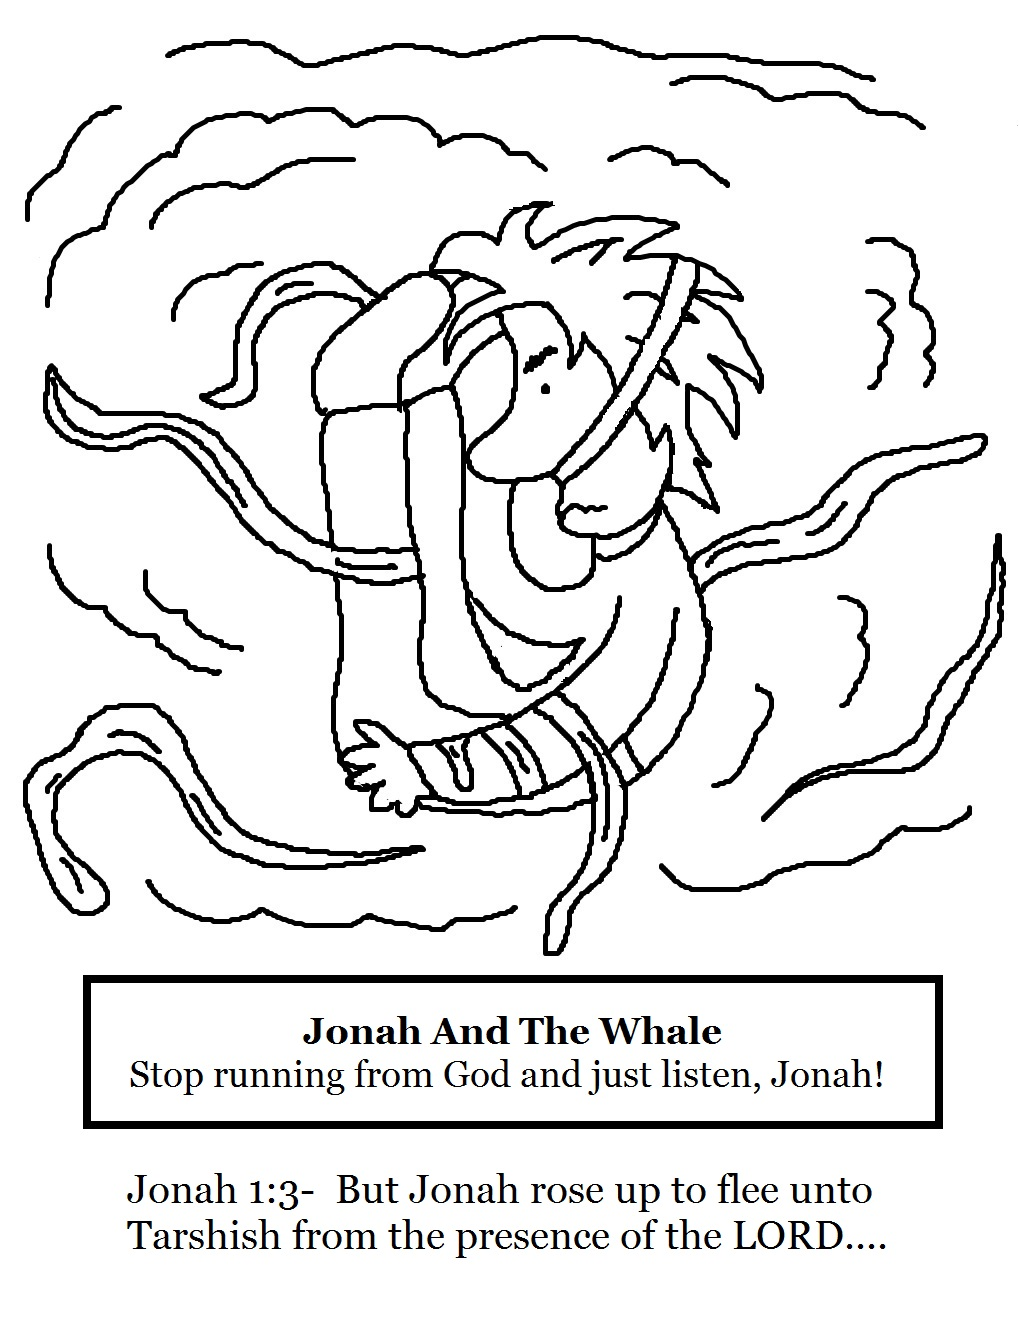 Jonah and The Whale Sunday School Lesson 3